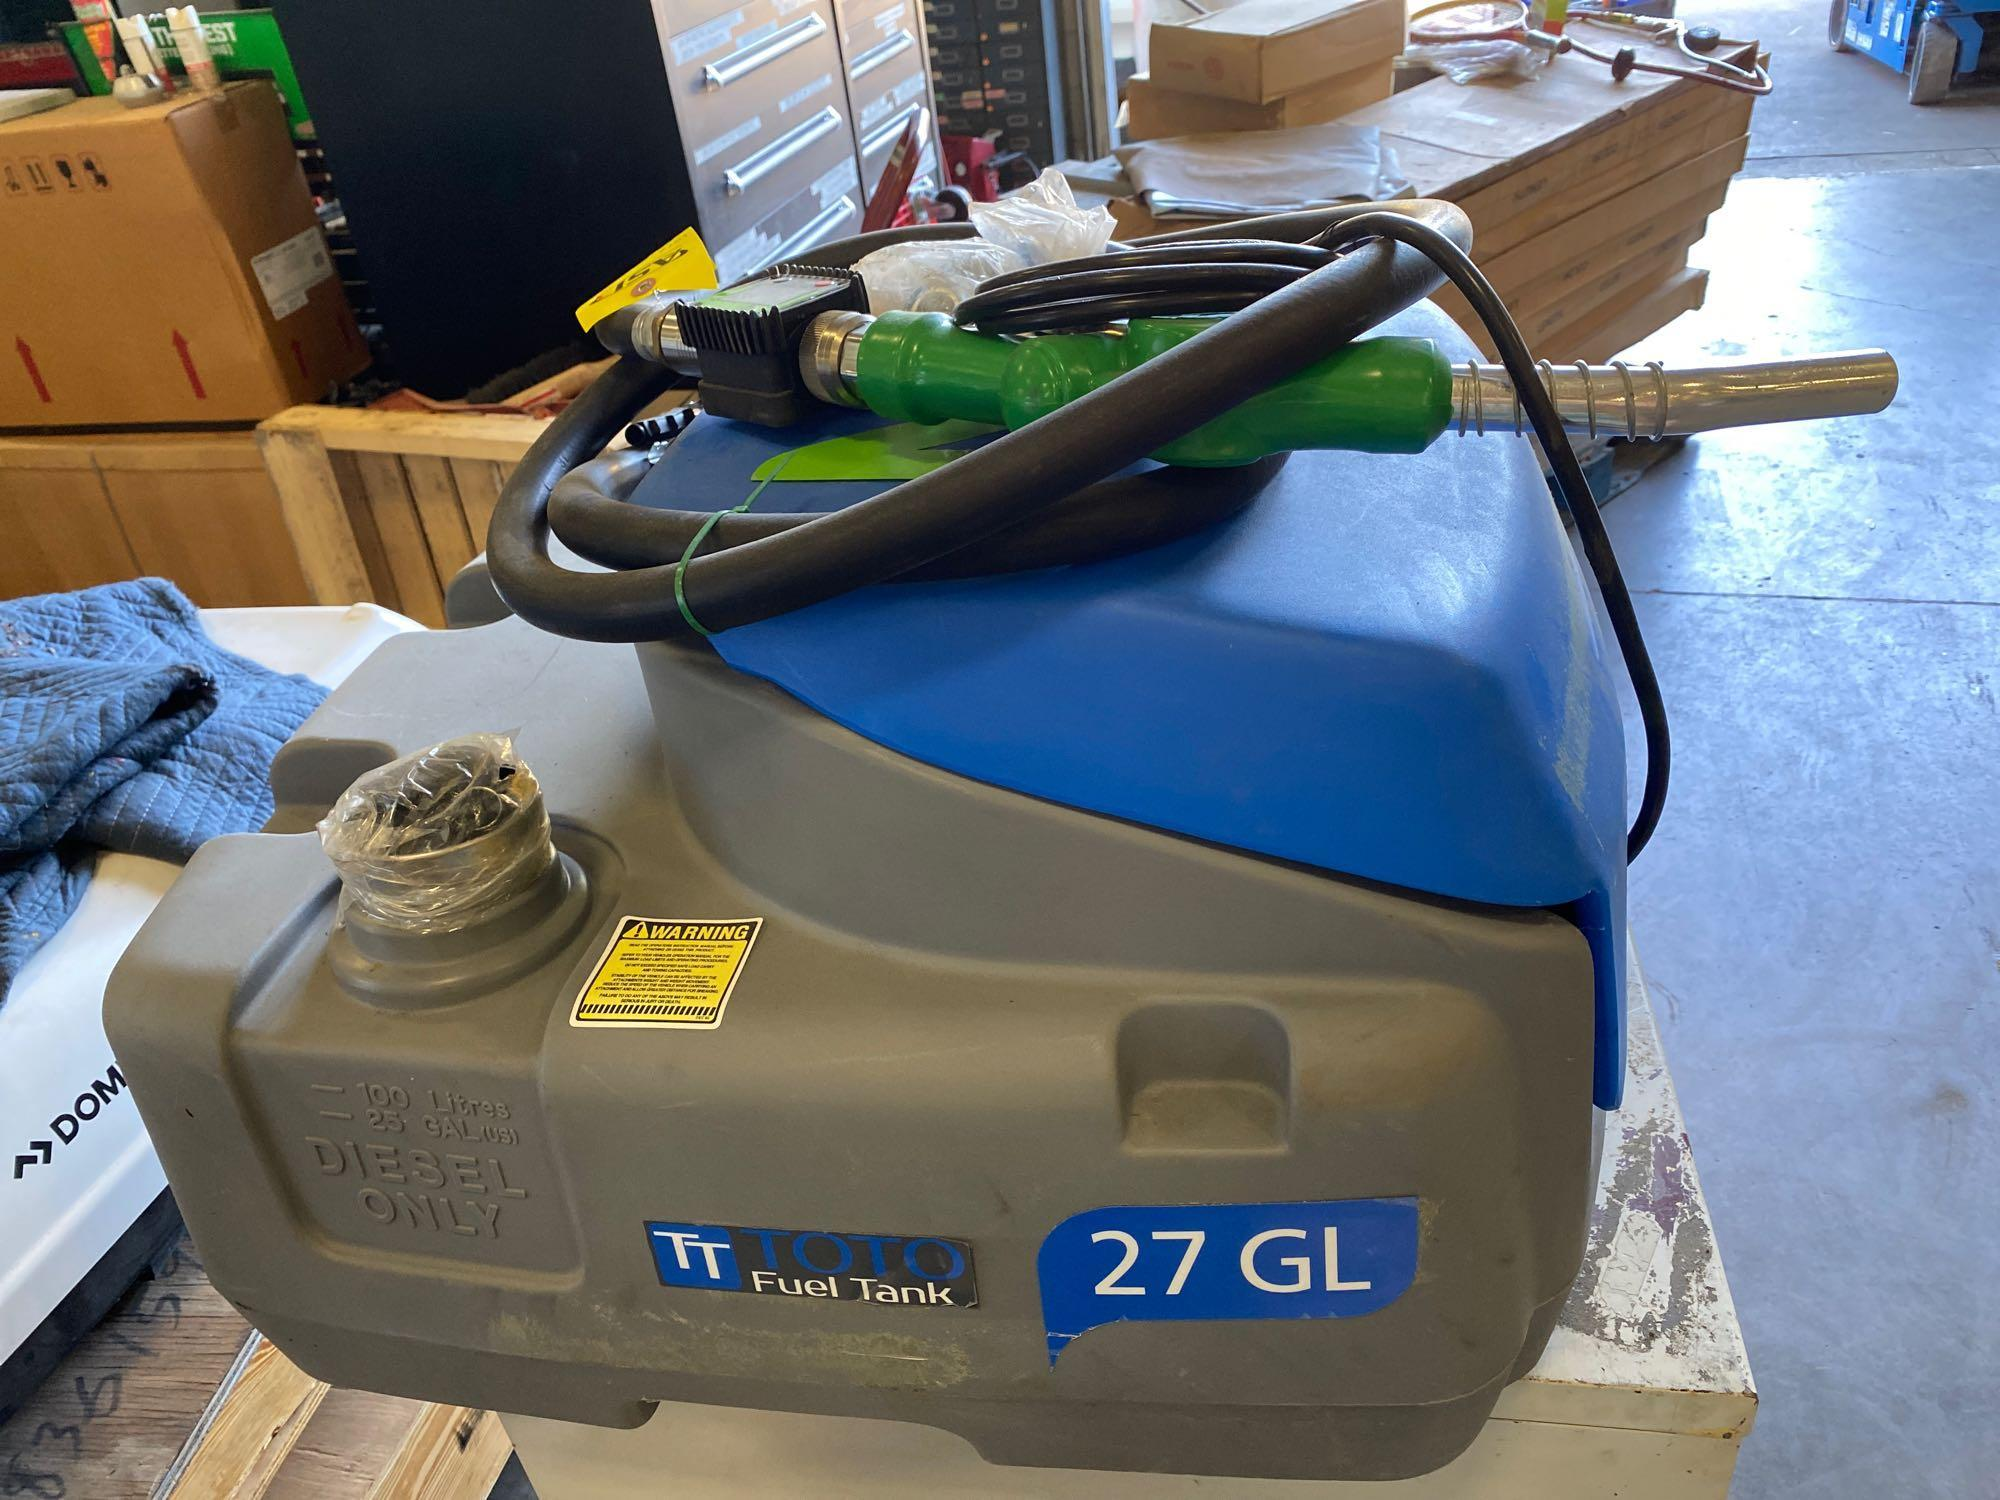 UNUSED TOTO 27 GALLON FUEL TANK WITH 12V PUMP - Image 2 of 6